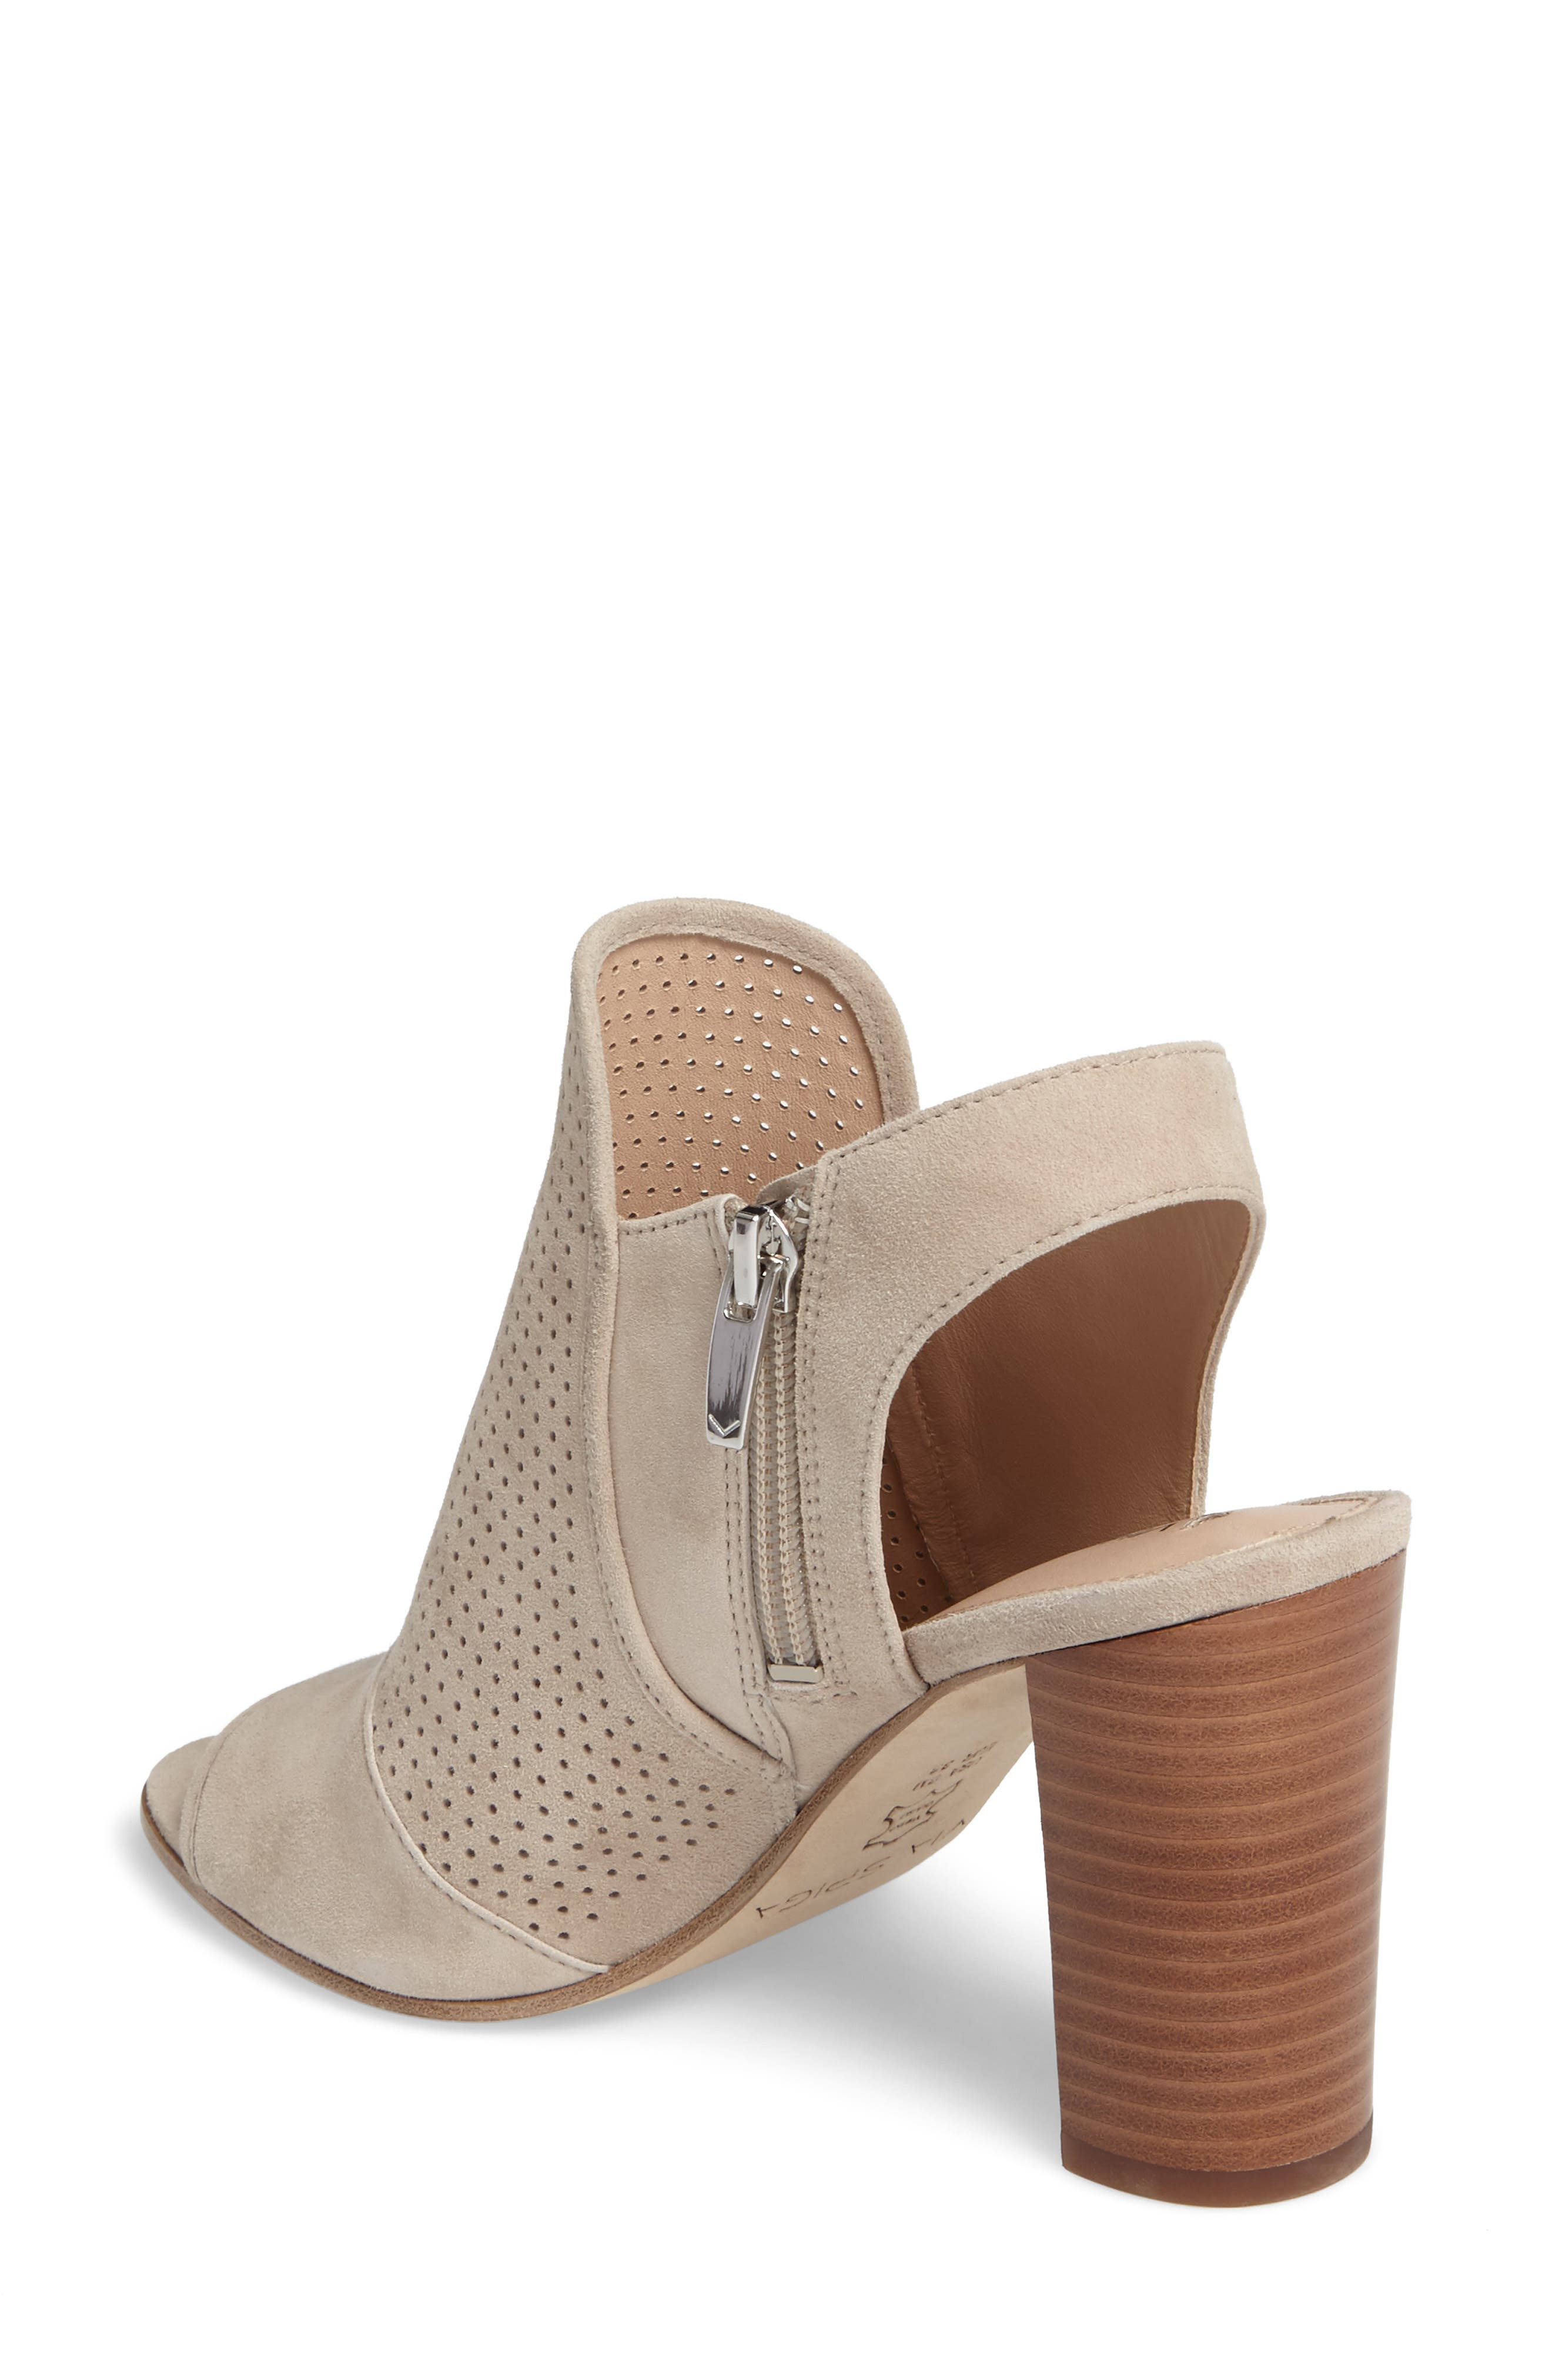 Alternate Image 2  - Via Spiga Gaze Block Heel Sandal (Women)